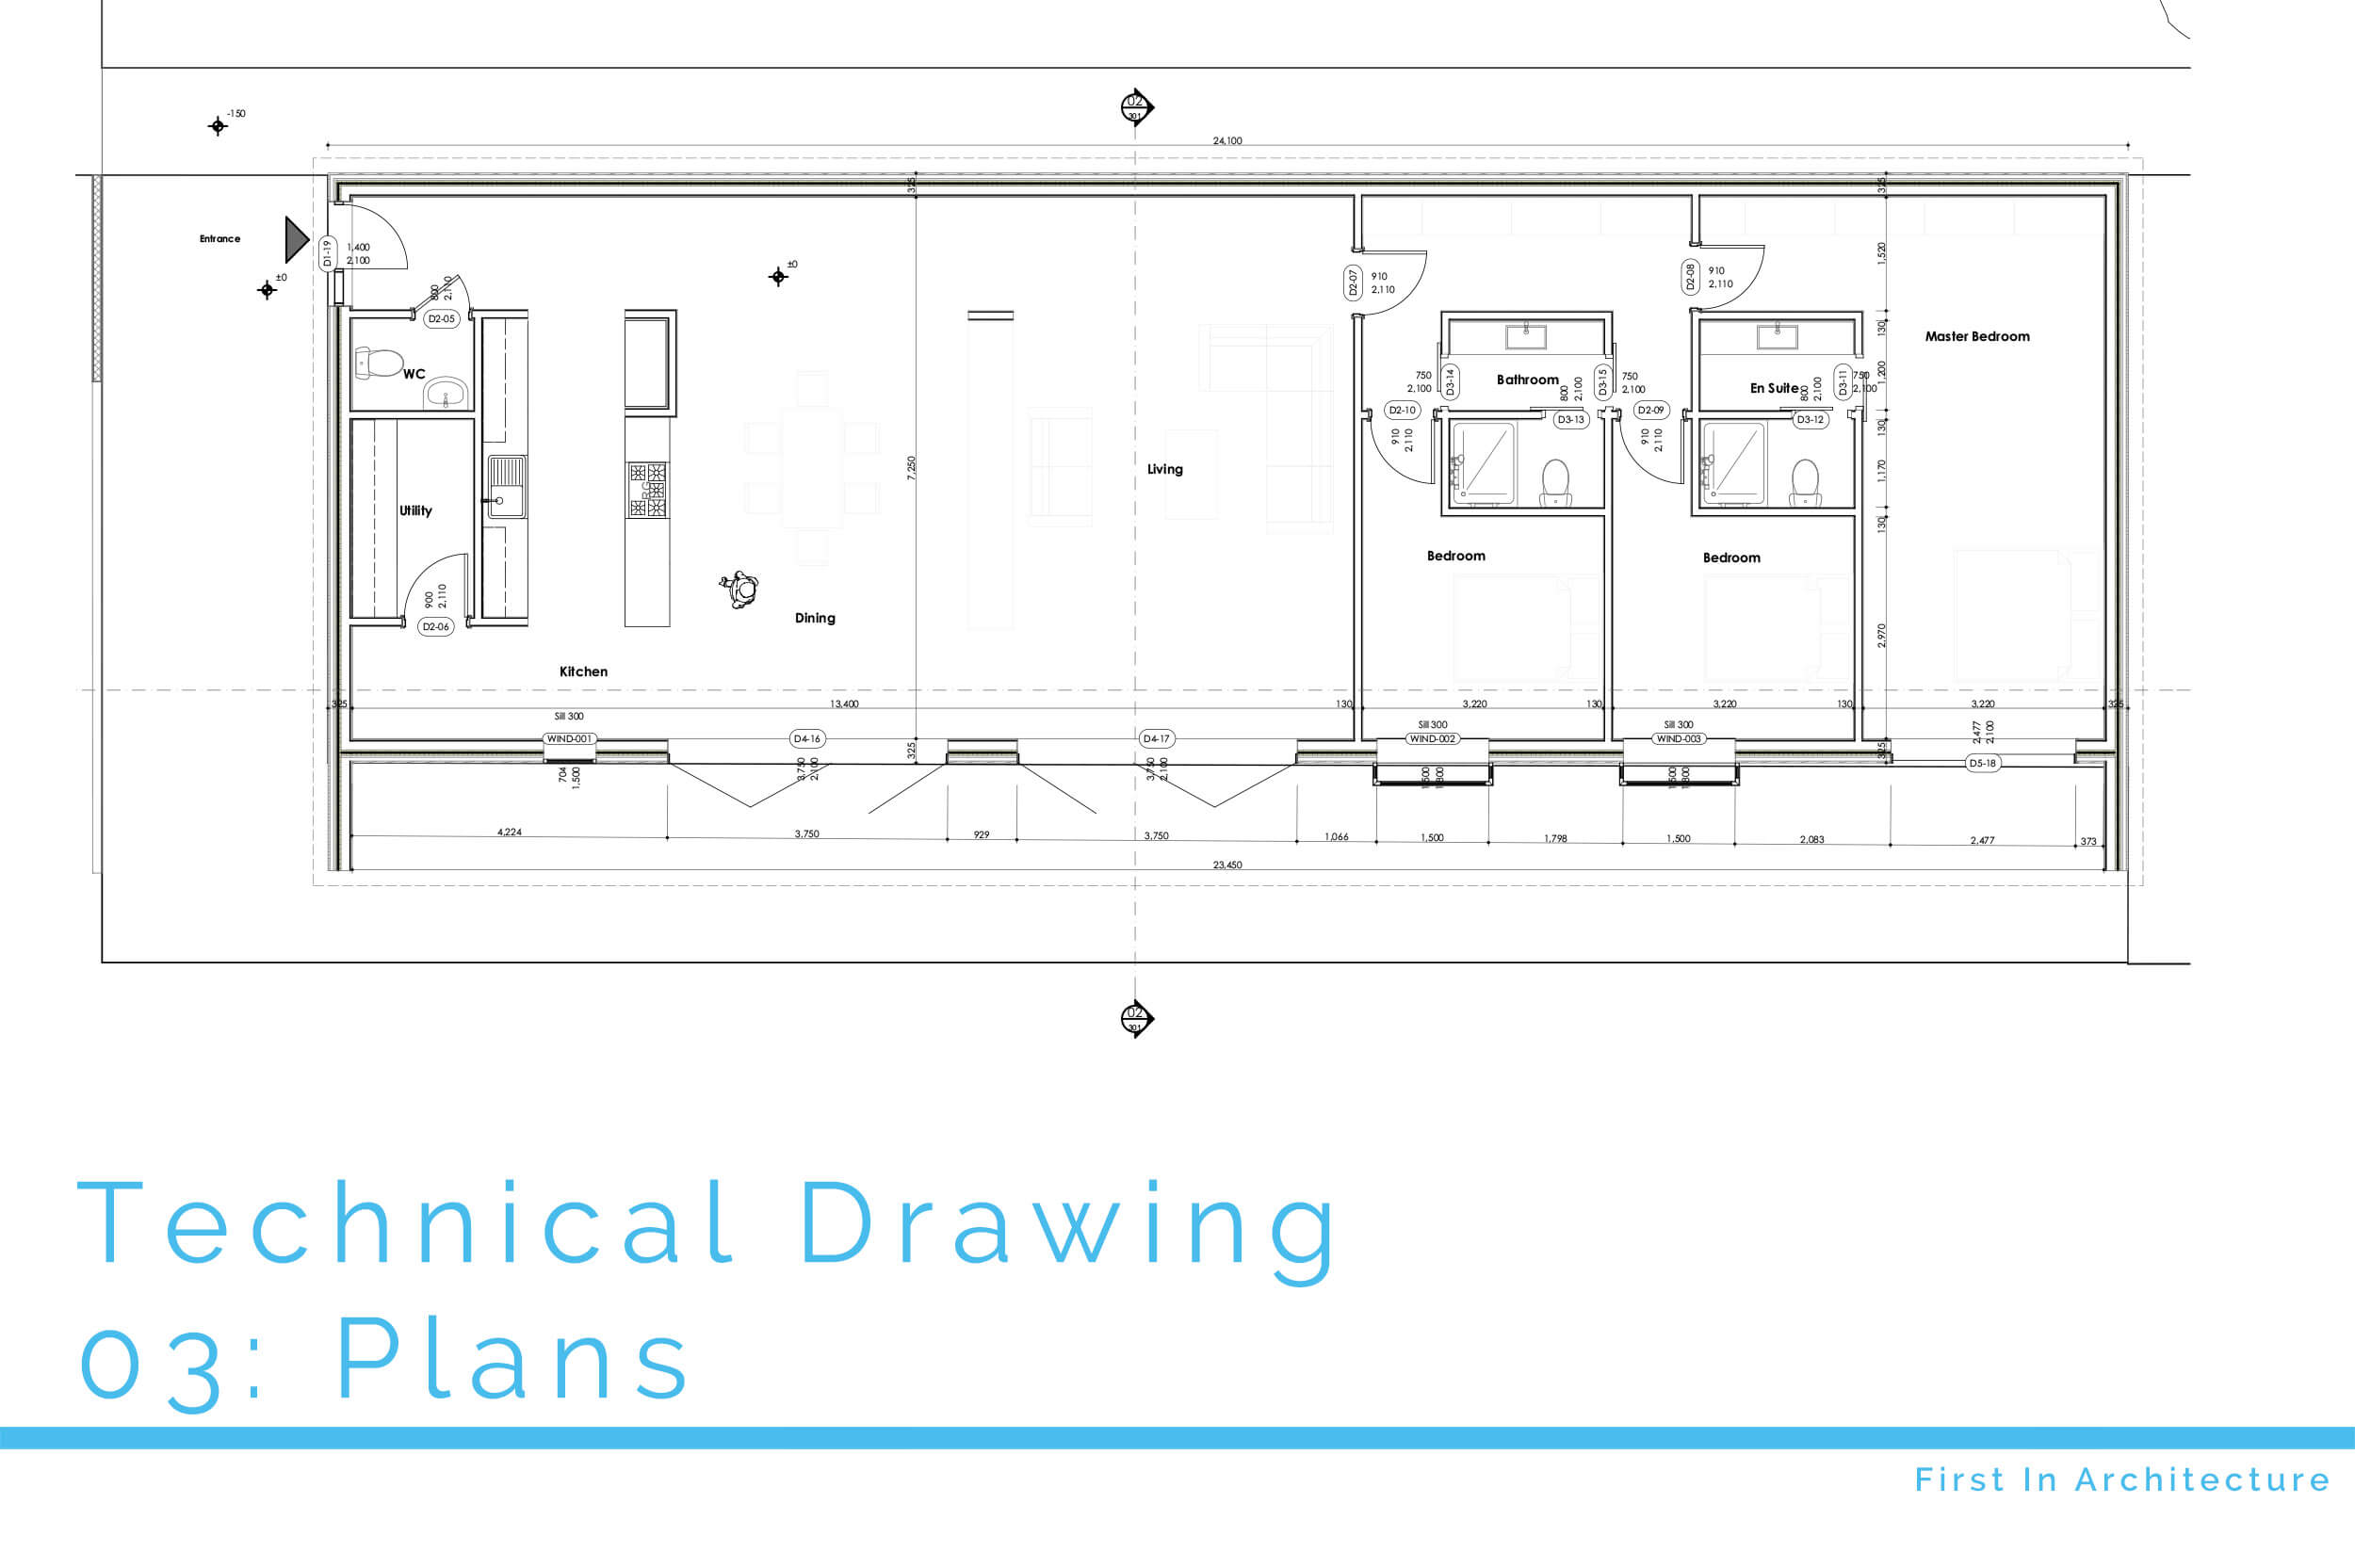 Technical Drawing Plans First In Architecture